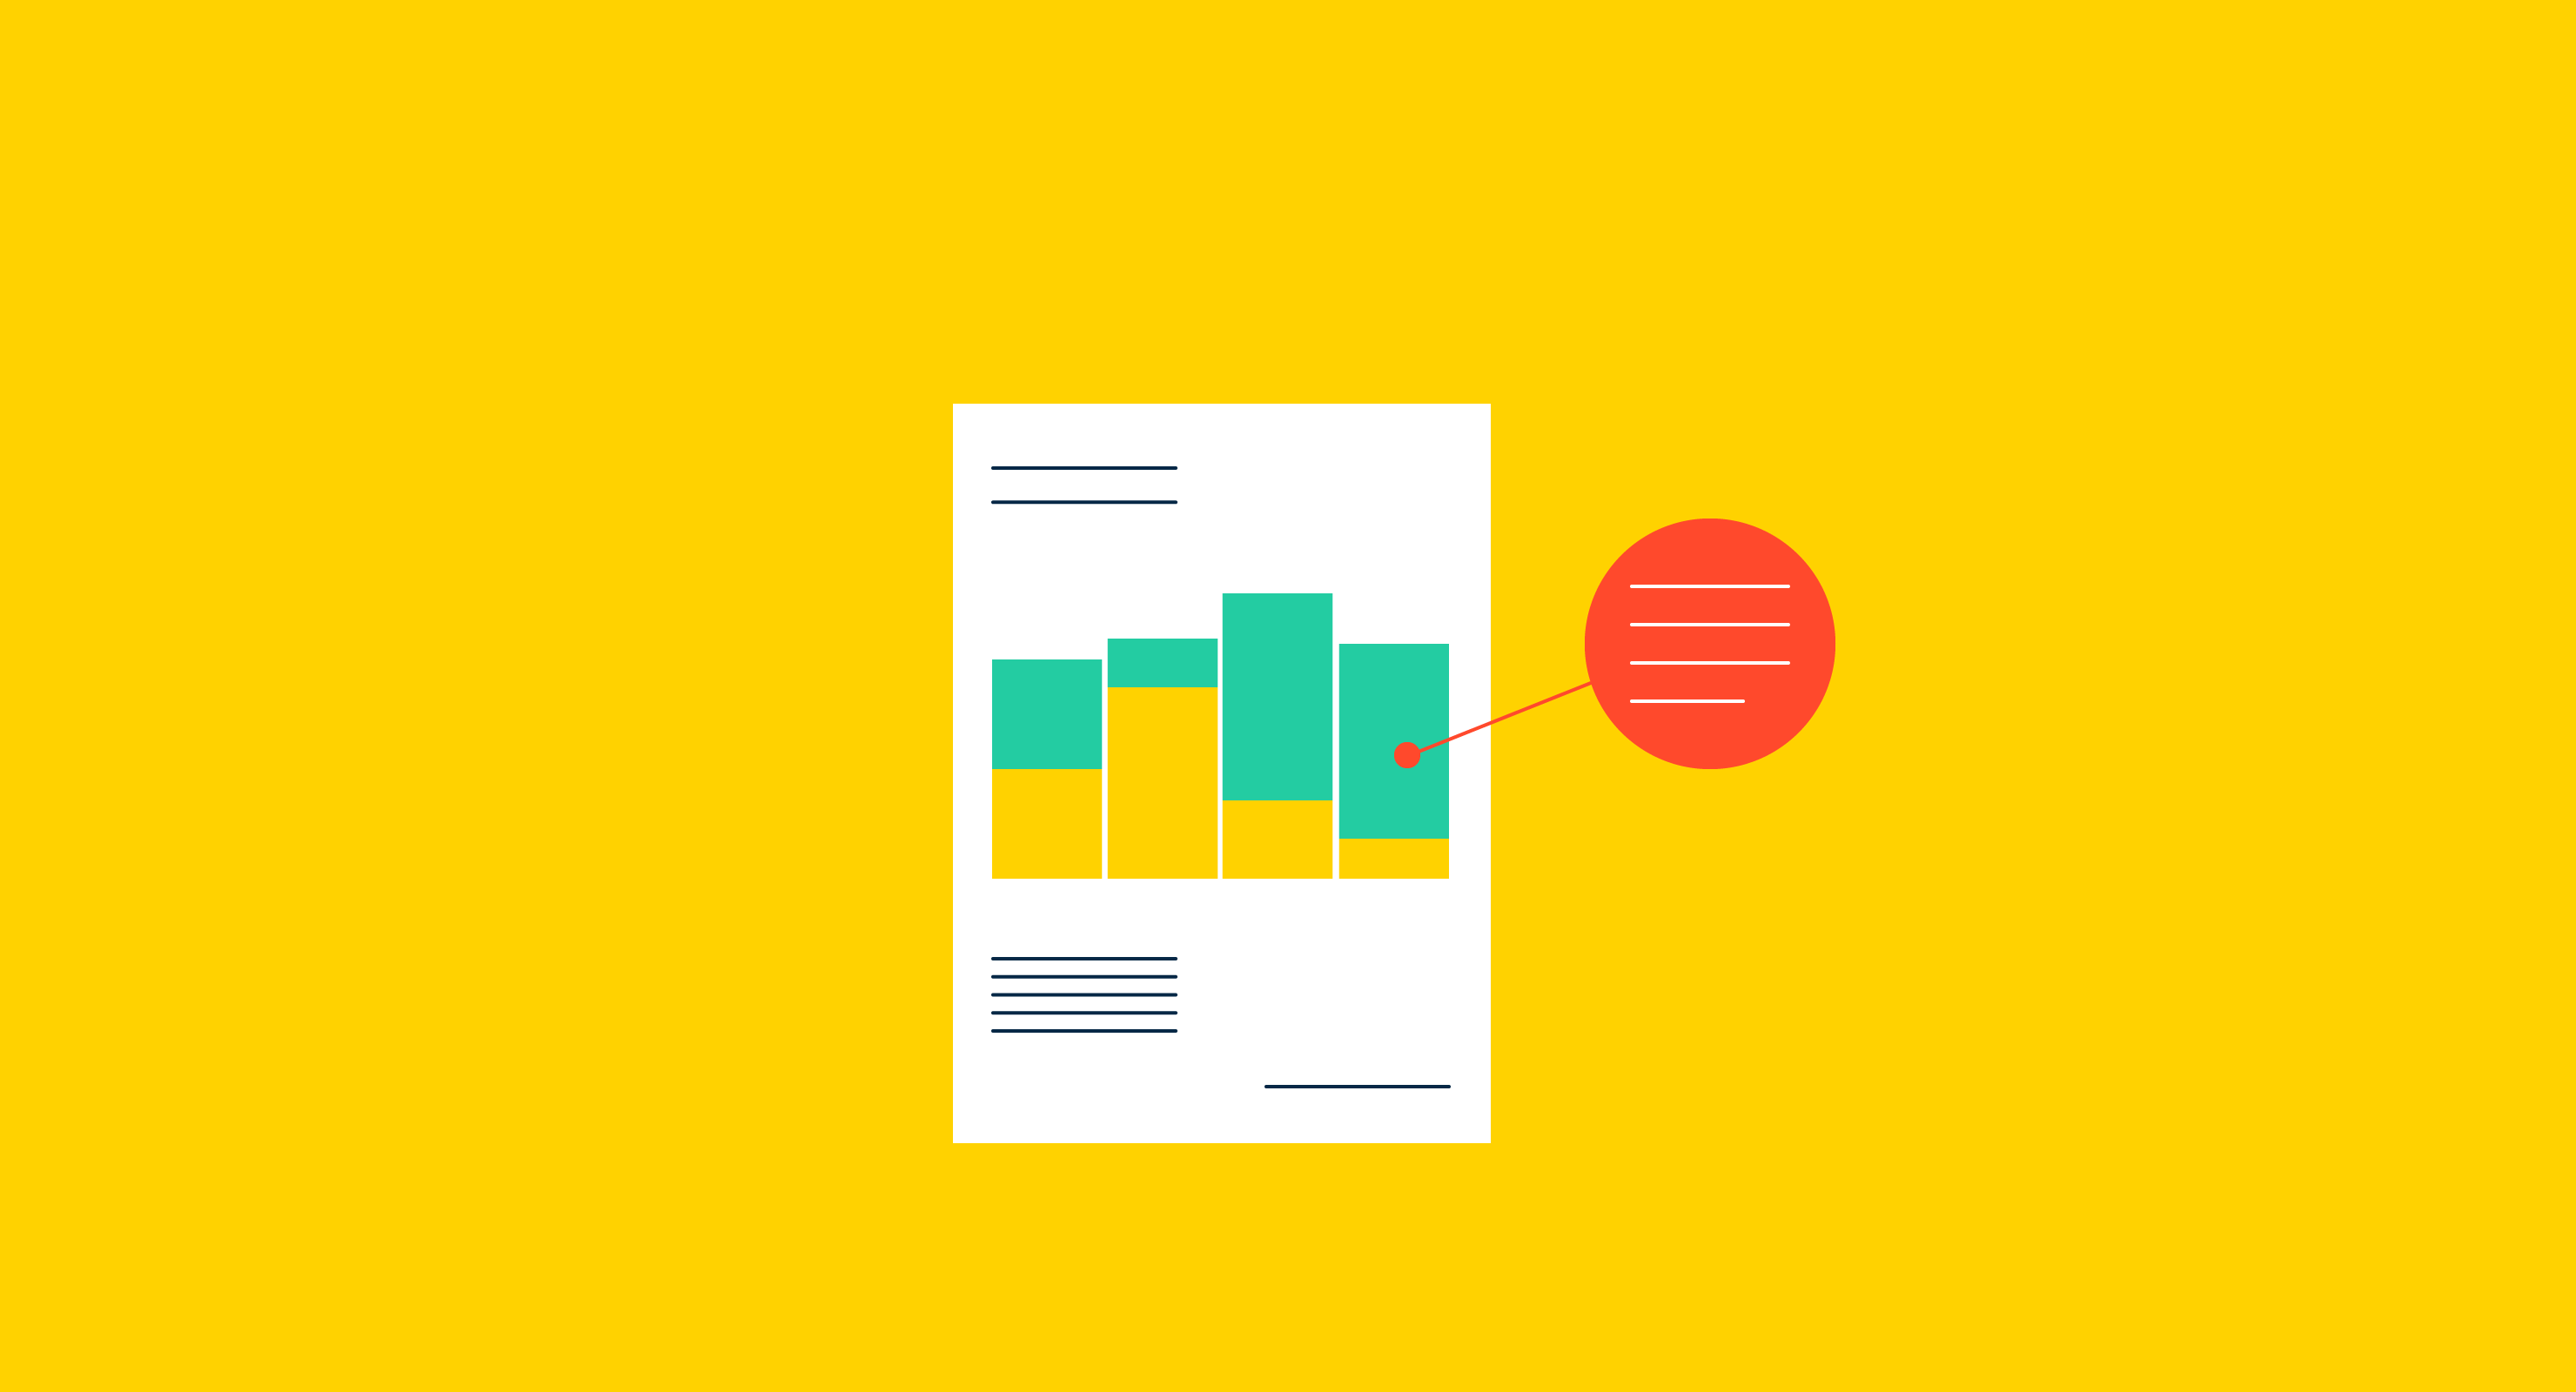 How to Use Sales Reports to Communicate Value